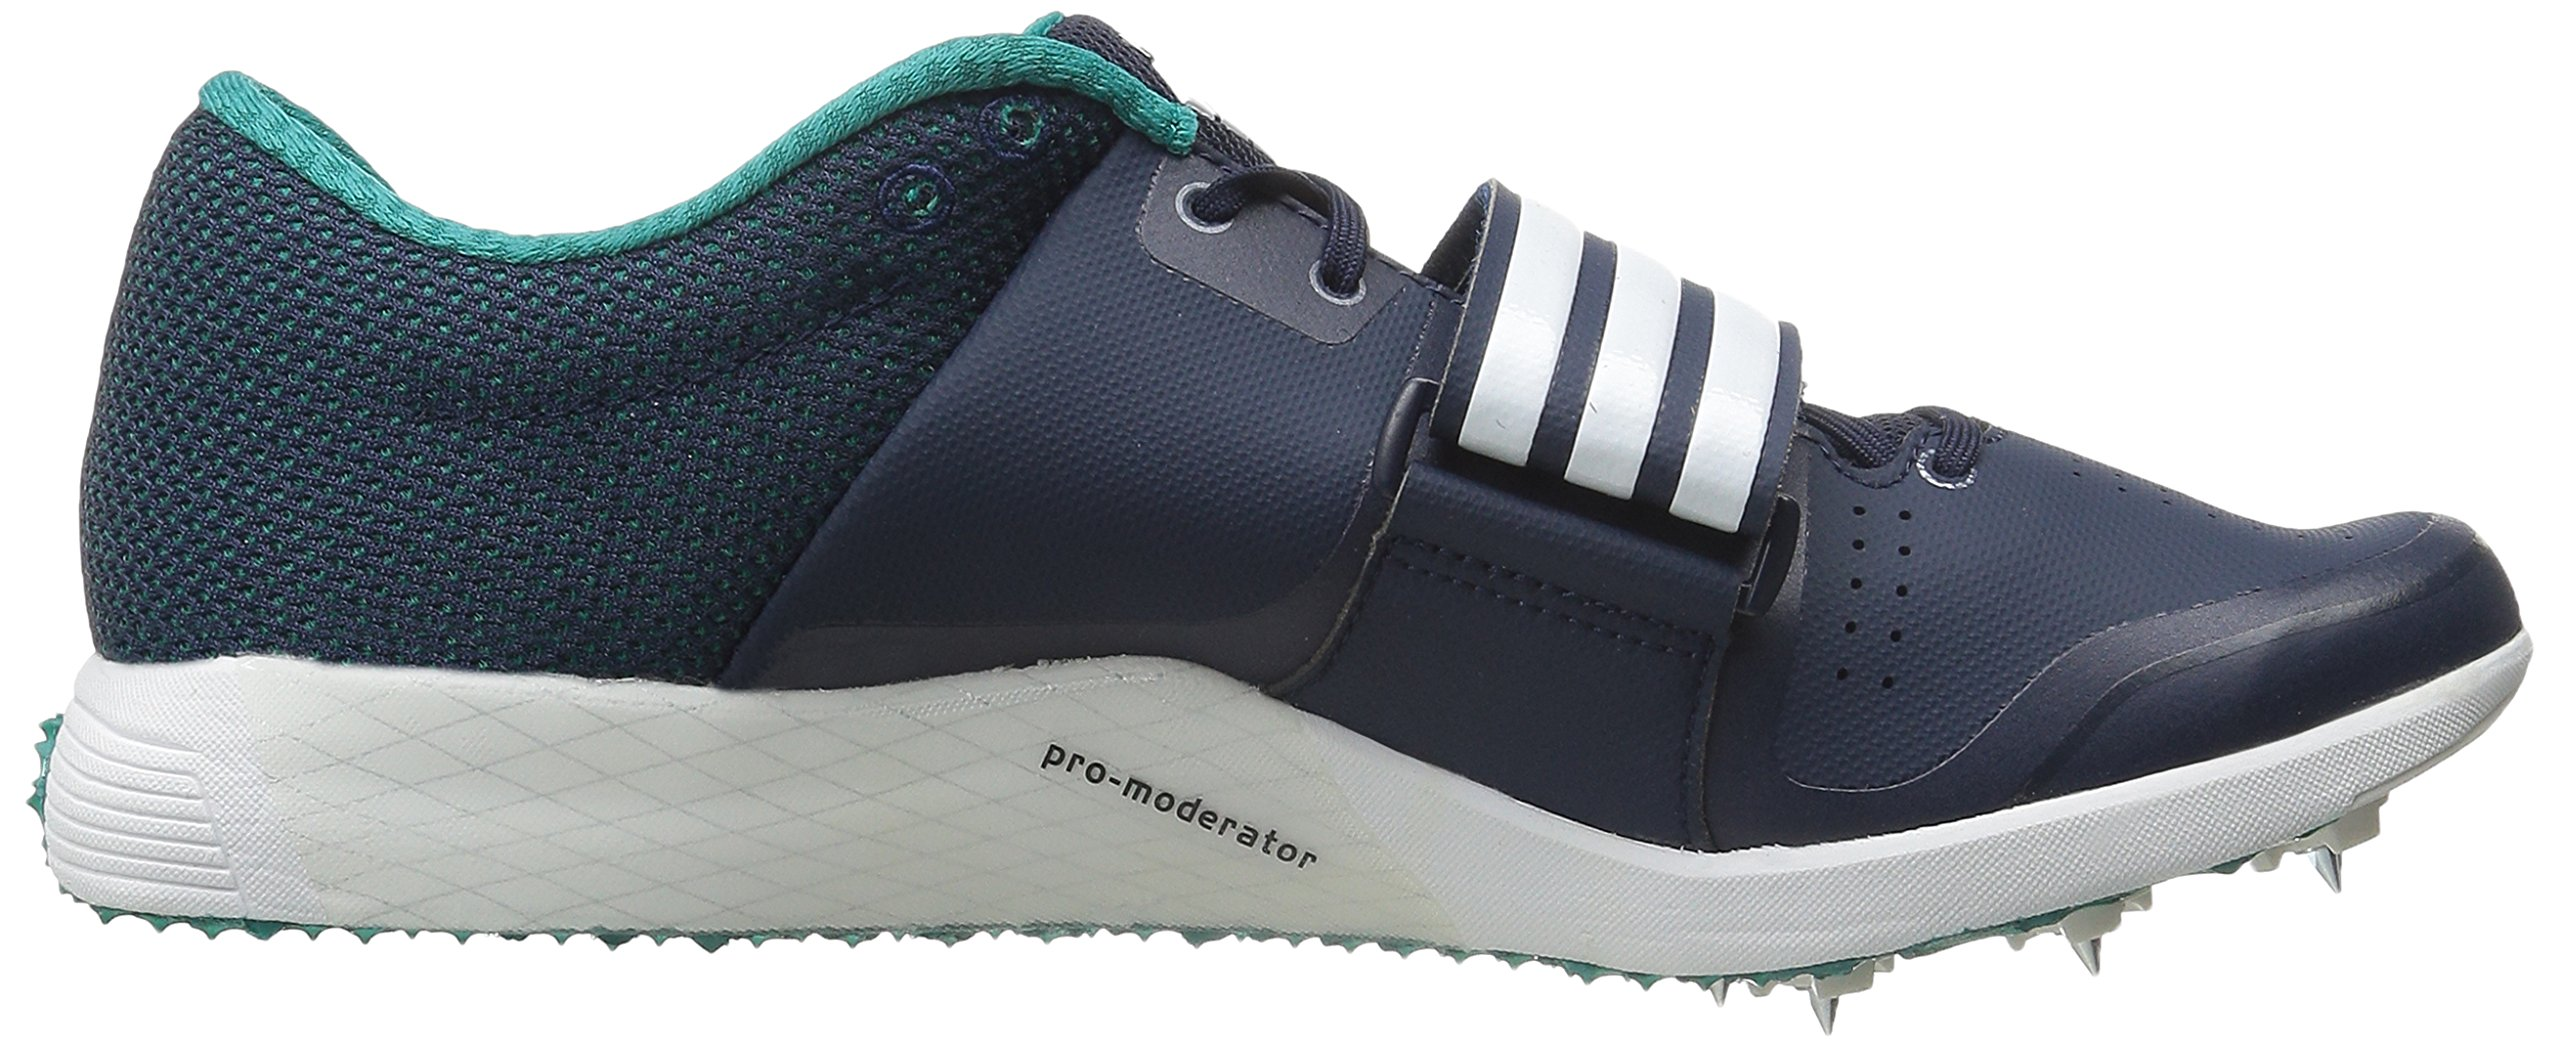 adidas Performance Women's Adizero TJ/PV Running Shoe with Spikes,Collegiate Navy/White/Green,15 M US by adidas (Image #7)